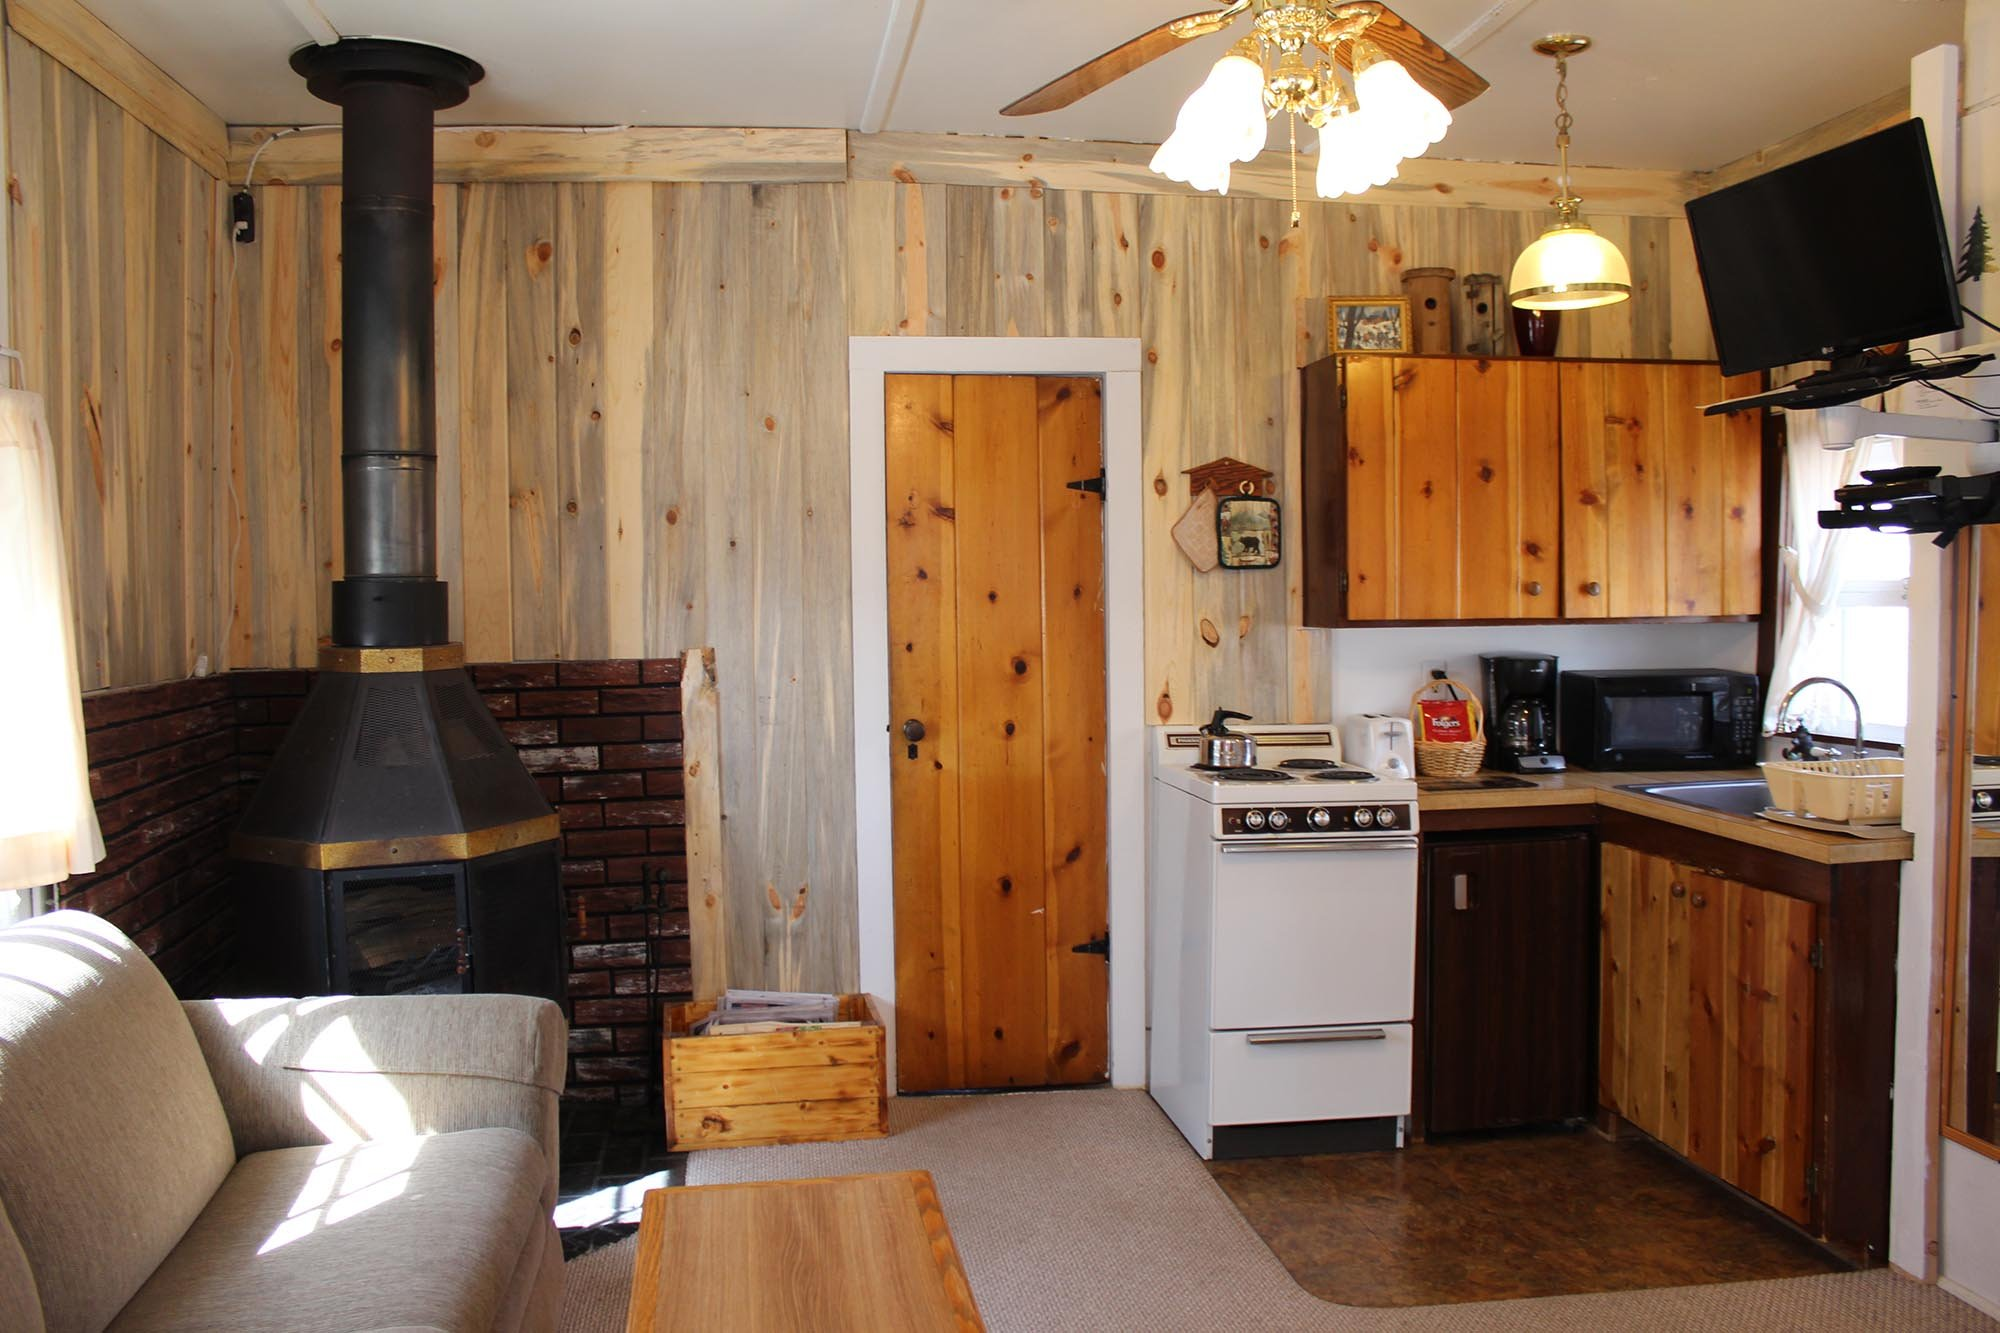 Wondrous Colorado Cottages Vacation Cabin Rentals In Estes Park Home Interior And Landscaping Ferensignezvosmurscom